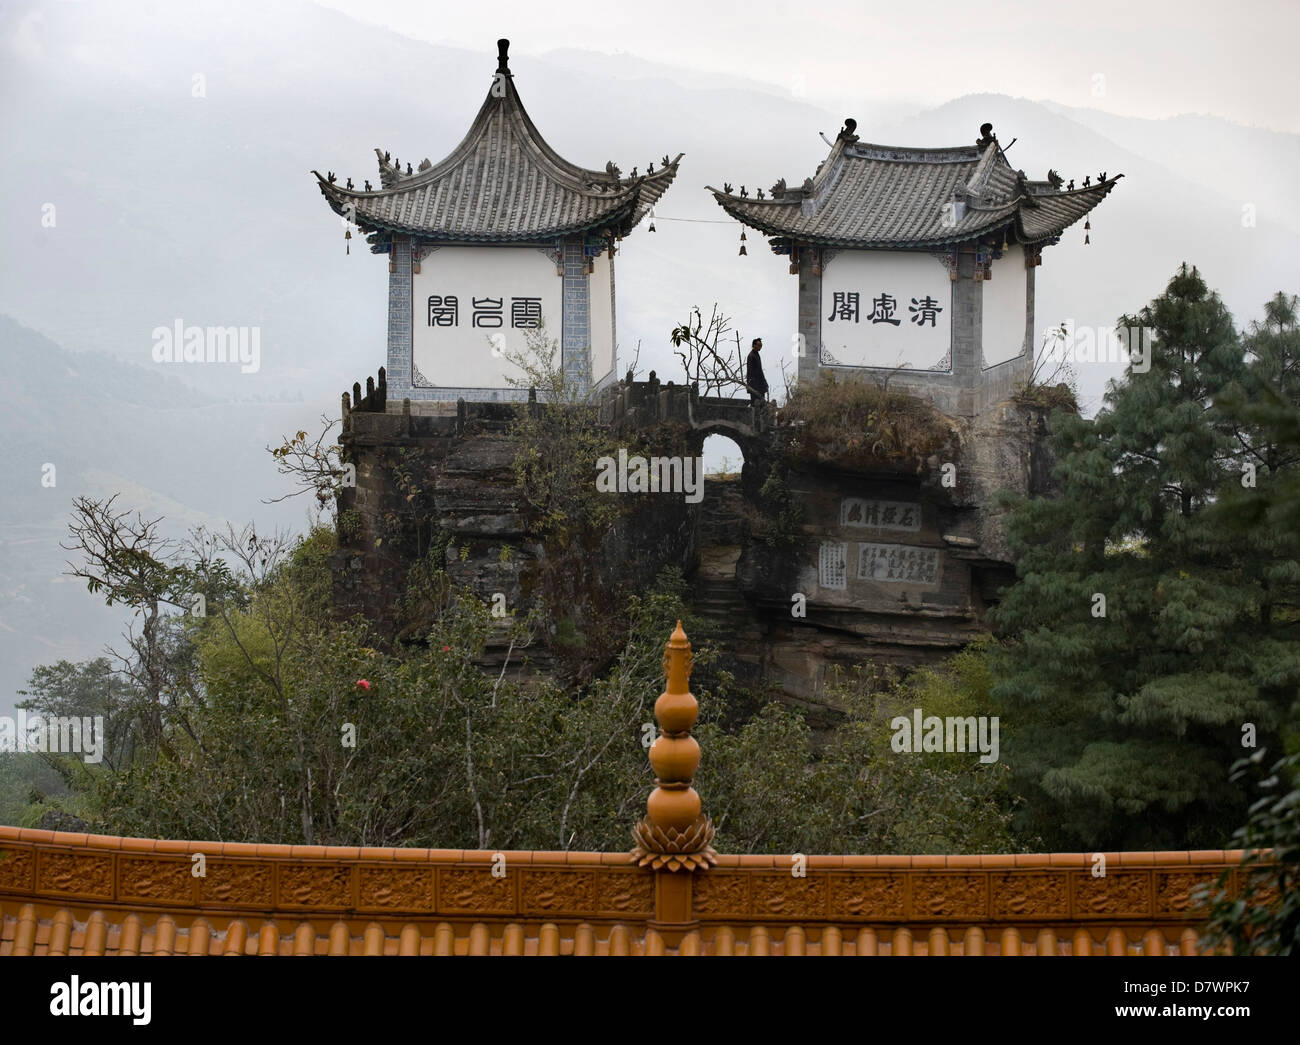 Shi Dong Si ('Stone Hall Temple'), a Taoist temple in the hills between Yuxin and Fengqing, - Stock Image